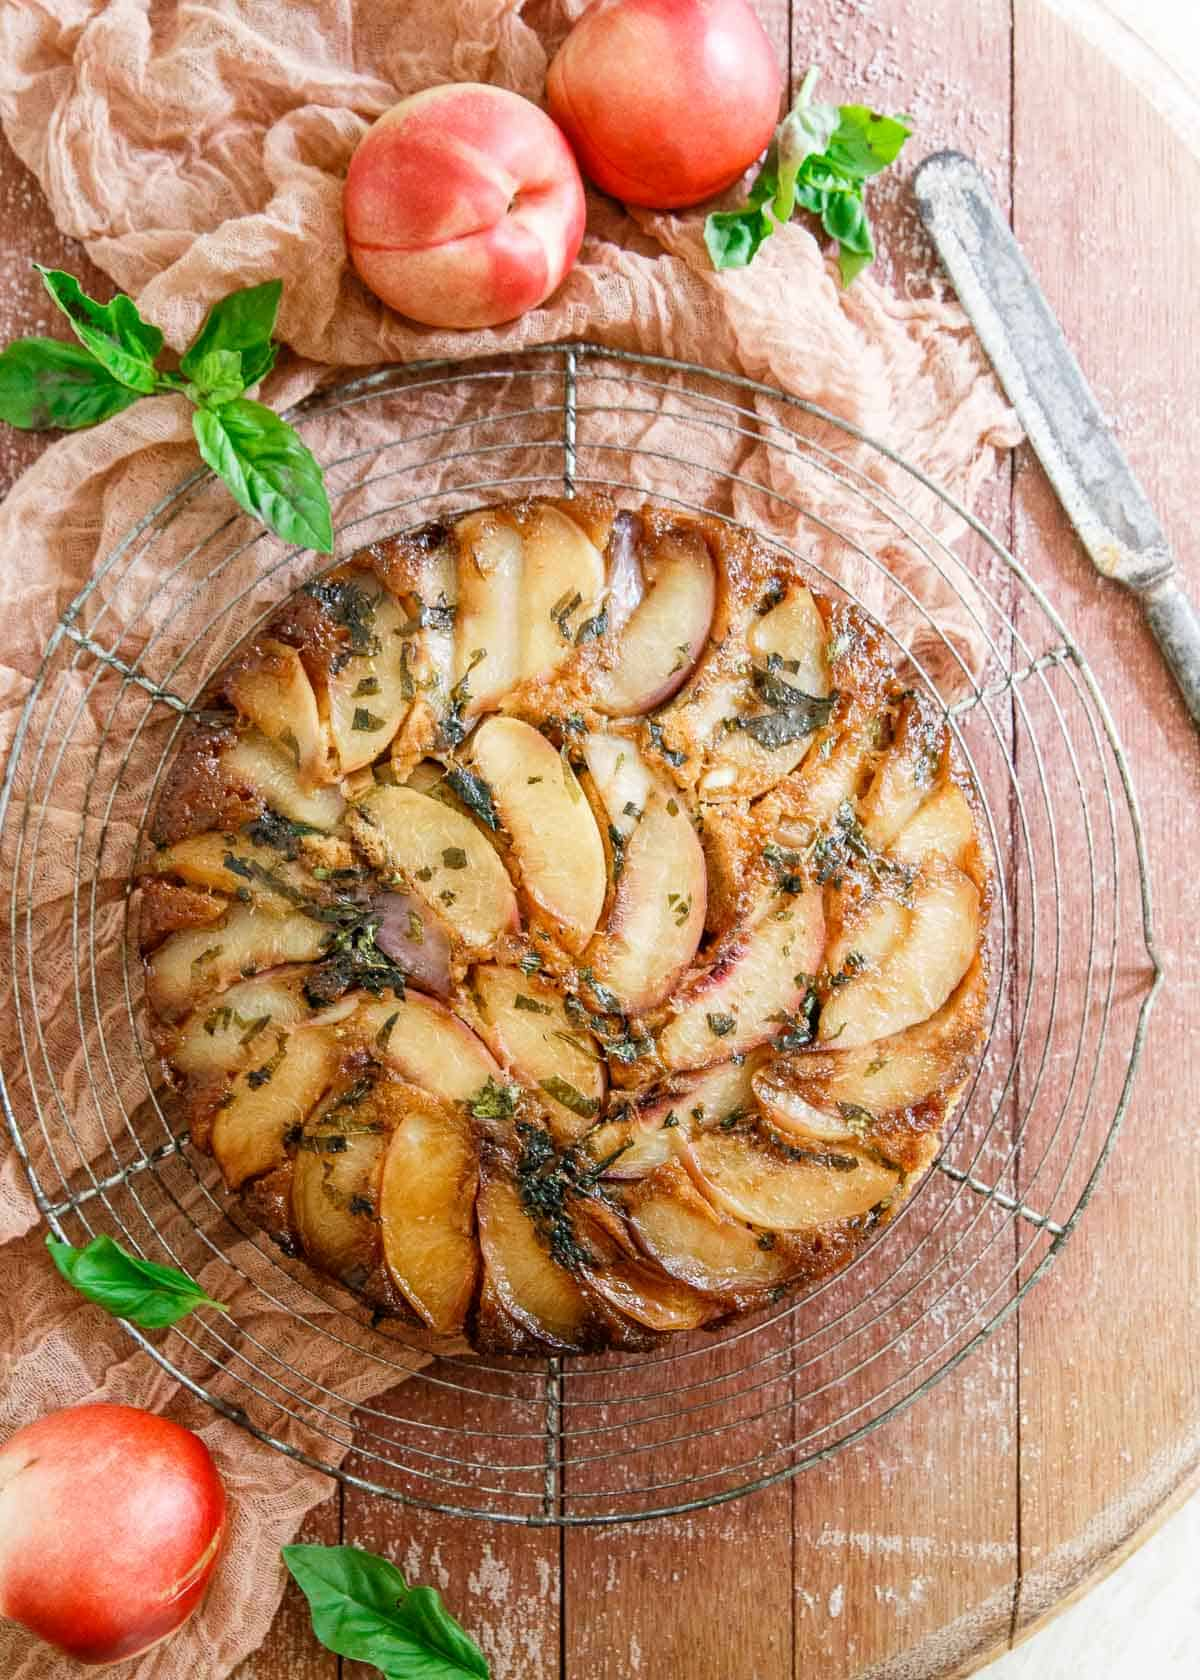 This Gluten Free Basil Nectarine Upside Down Cake has a hidden boost of collagen for a healthy protein kick.